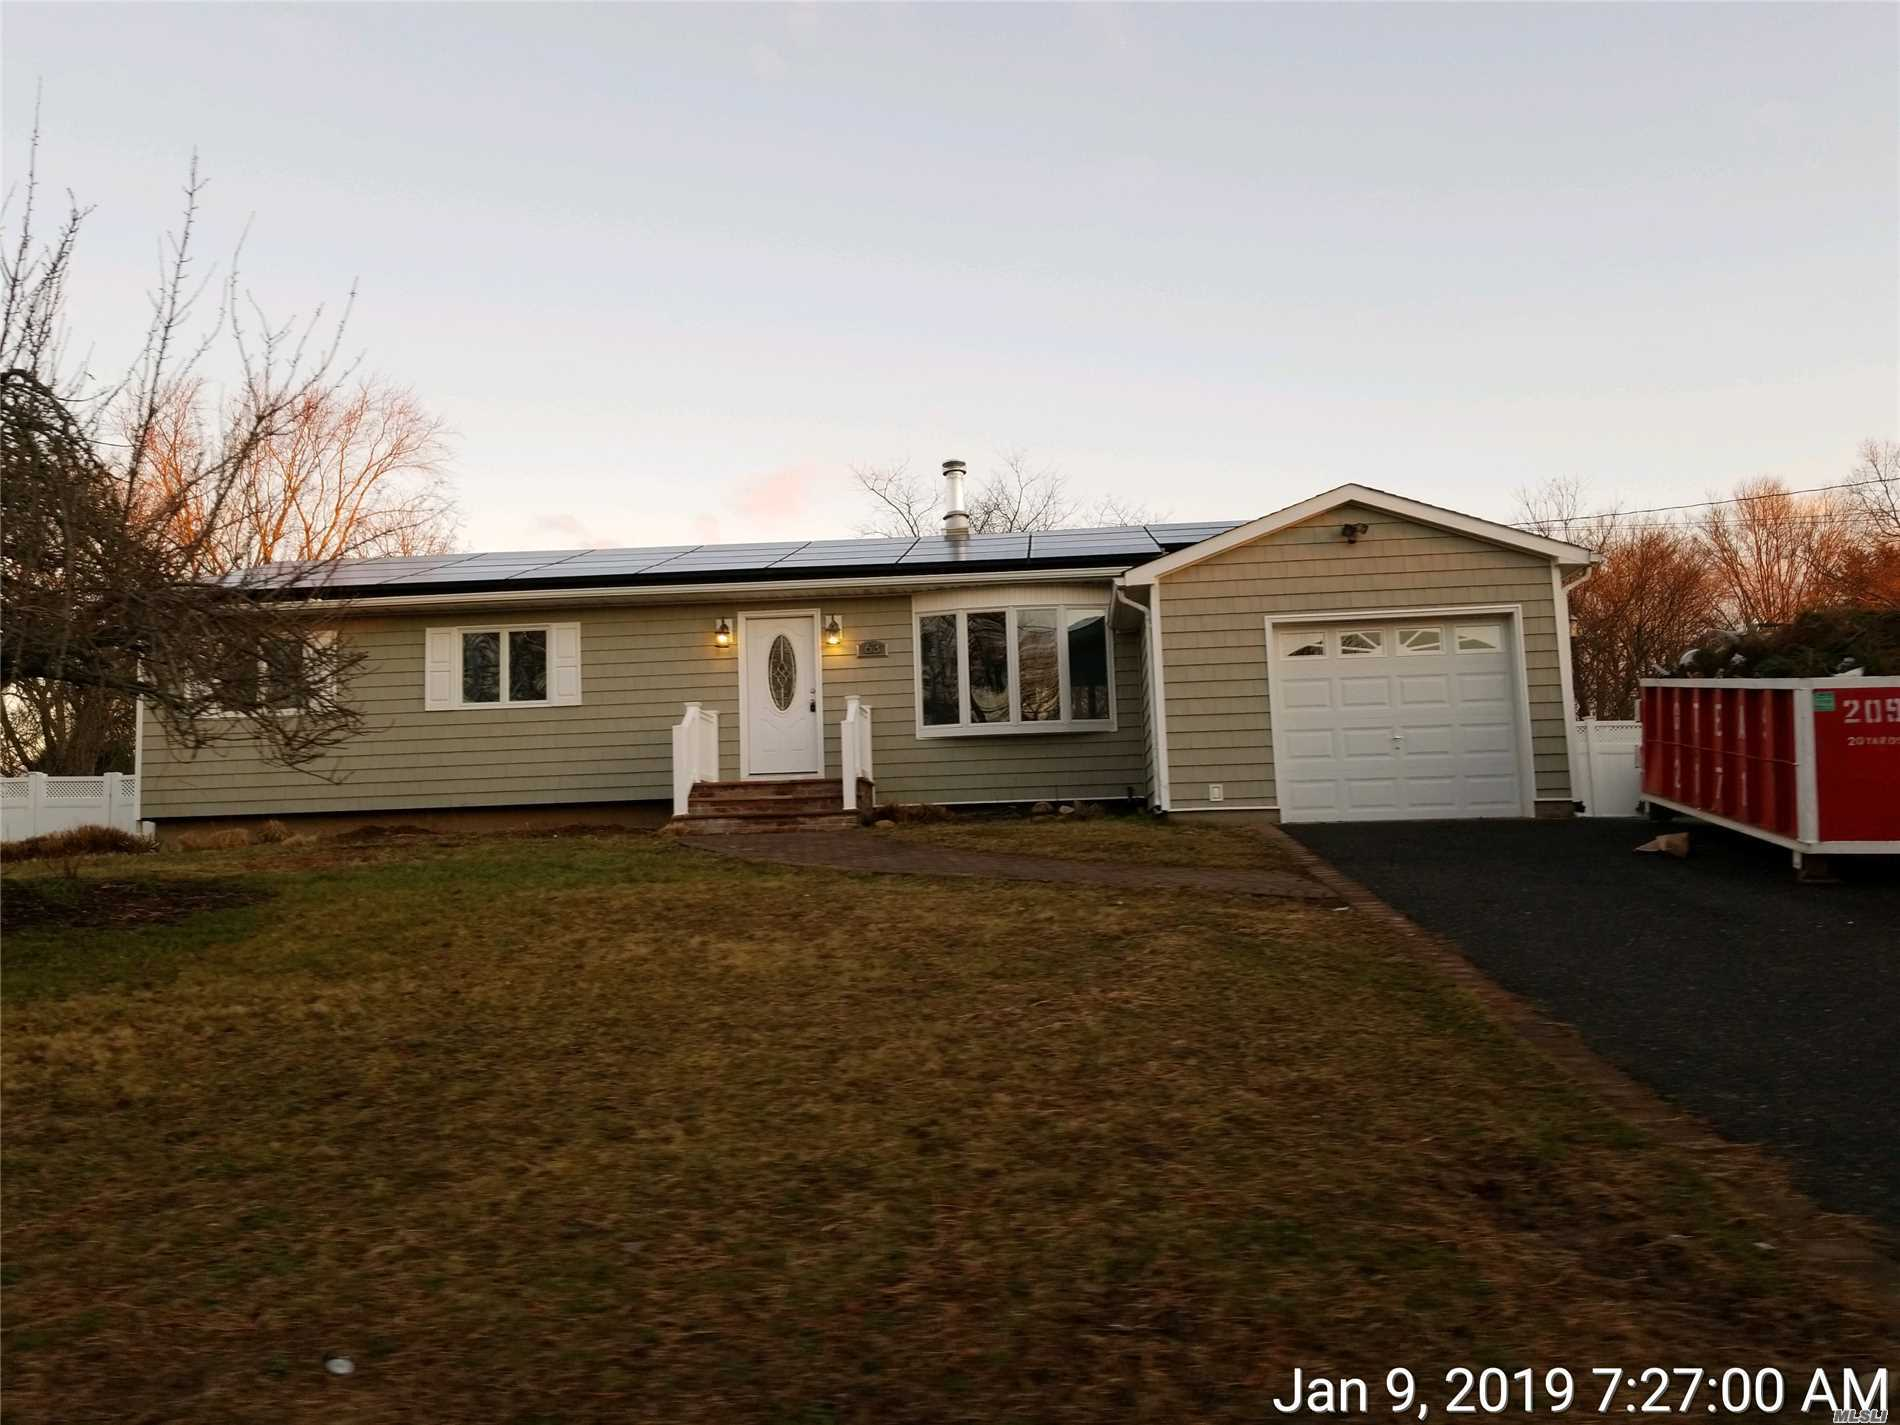 Totally Renovated Ranch Style Home With 4 Bedrooms And 4 Full Bathrooms! Large Kitchen With Vaulted Ceilings Skylights And Hi Hat Lighting, Huge Finished Basement, .44 Acre Level Fenced Lot! This Property Is A Dream!